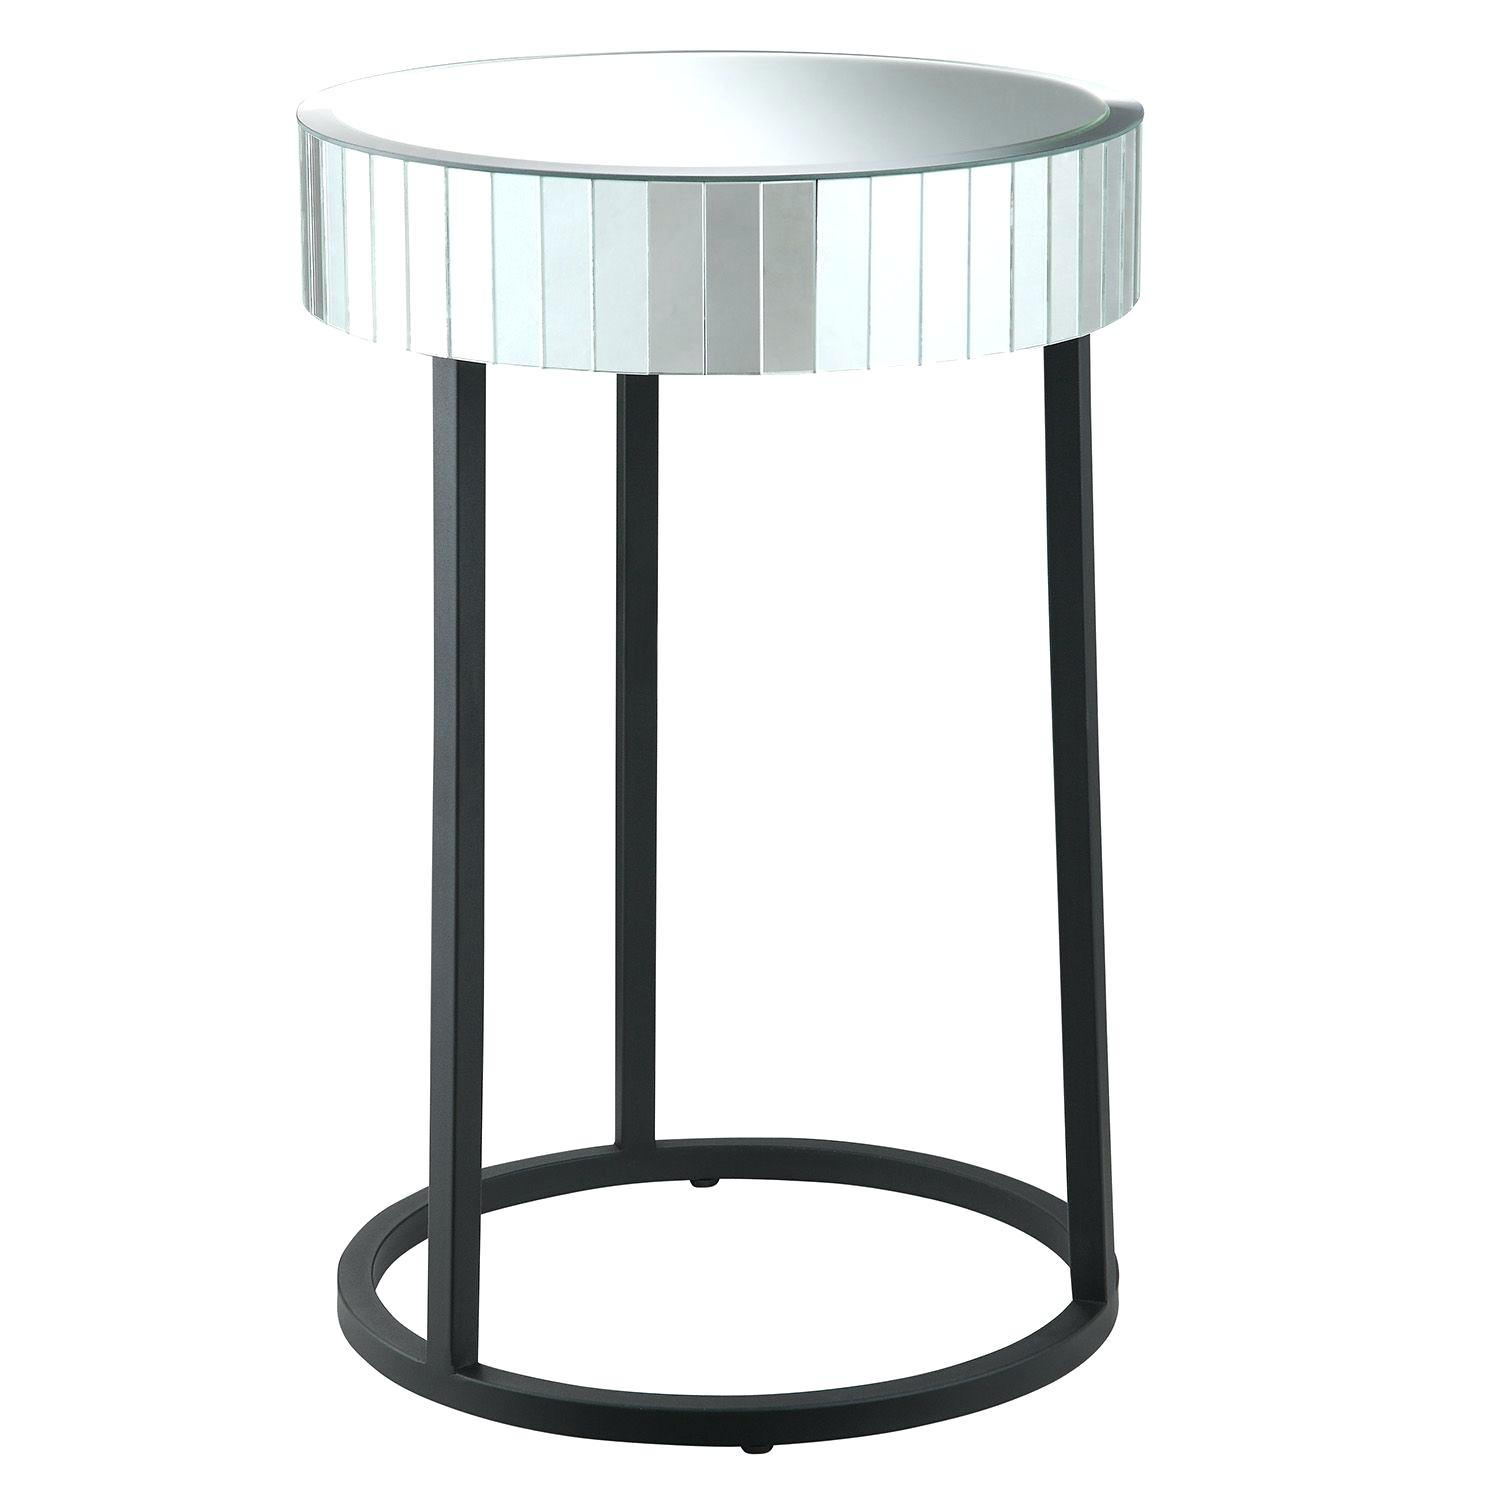 round mirror accent table pier tables mosaic lavorochogan info white mirrored grinch inflatable carpet reducer strip transition trim home design whole covers oval metal coffee